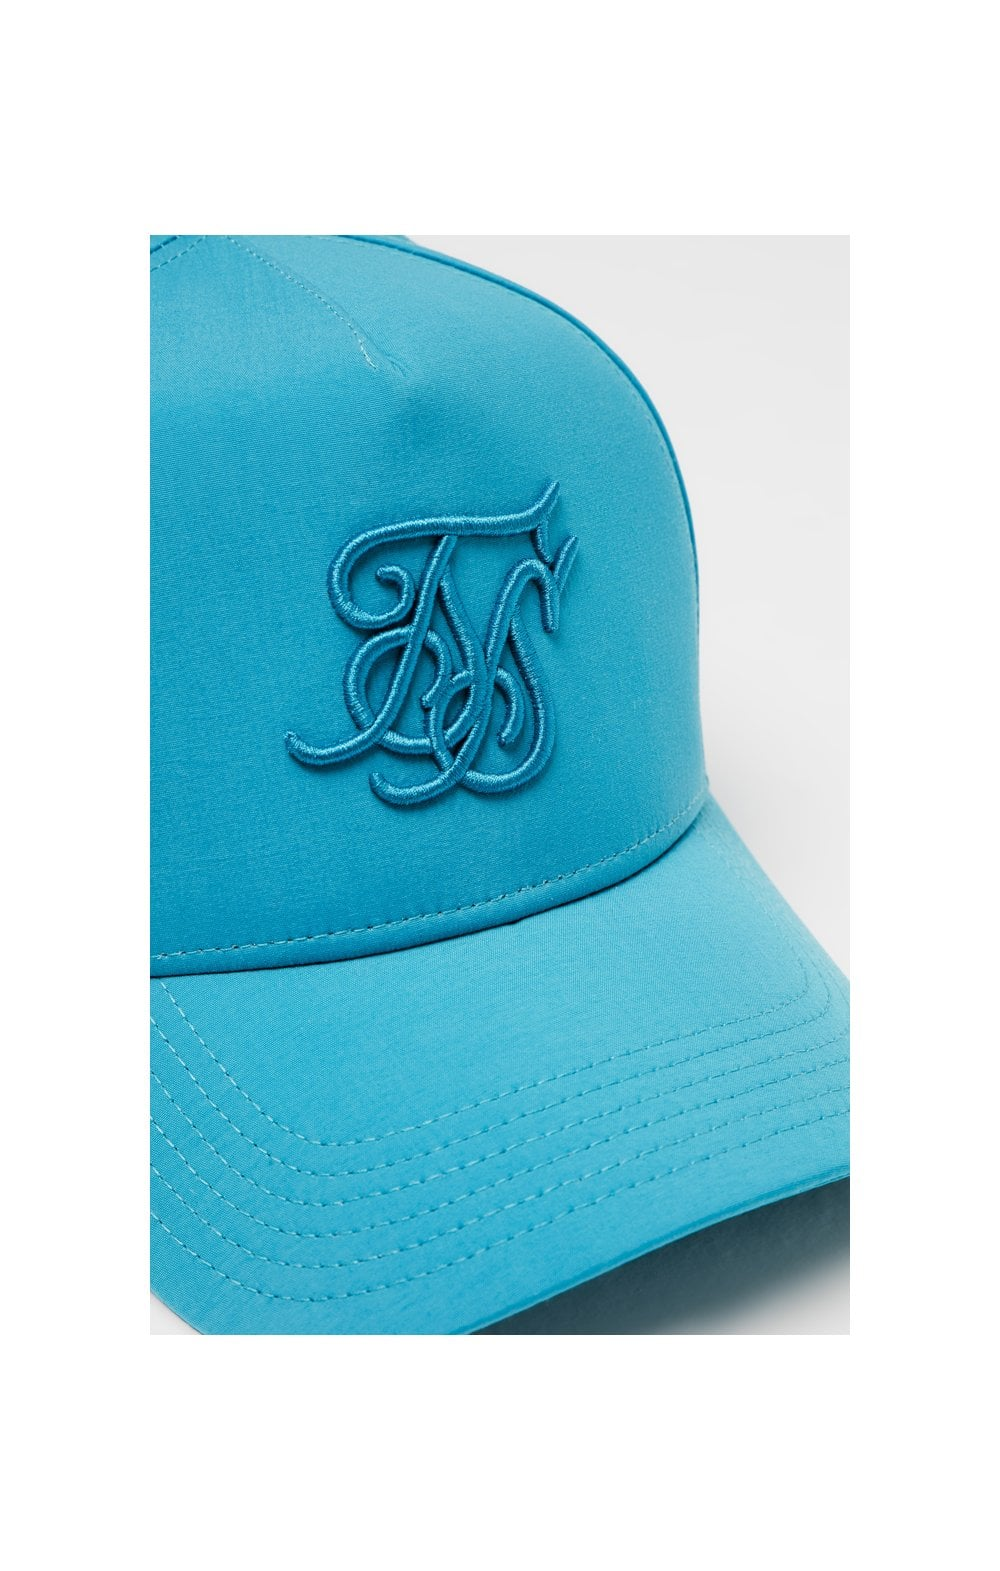 Load image into Gallery viewer, SikSilk Crushed Nylon Full Trucker - Teal (1)